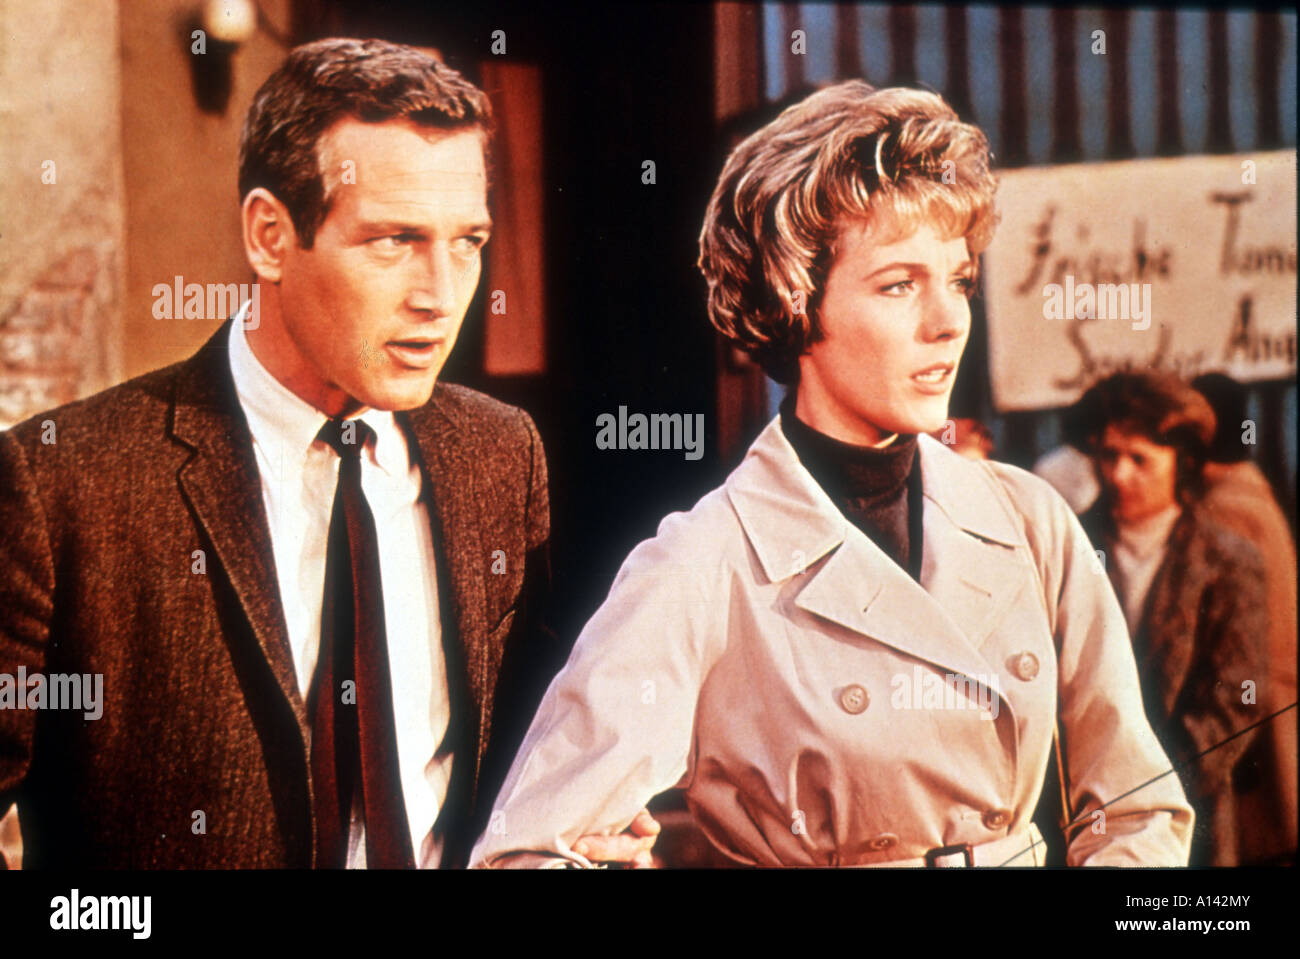 Torn curtain julie andrews - Stock Photo Torn Curtain Year 1966 Director Alfred Hitchcock Paul Newman Julie Andrews